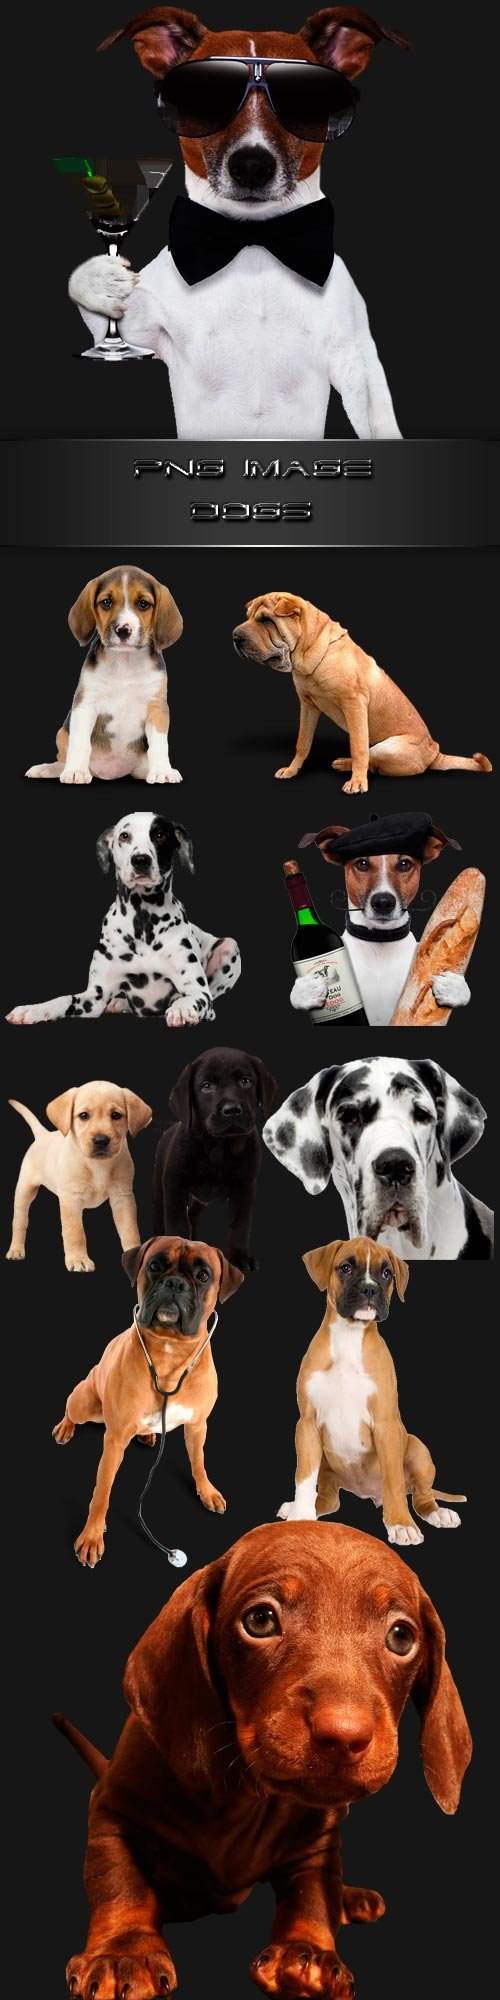 PNG clipart Dogs